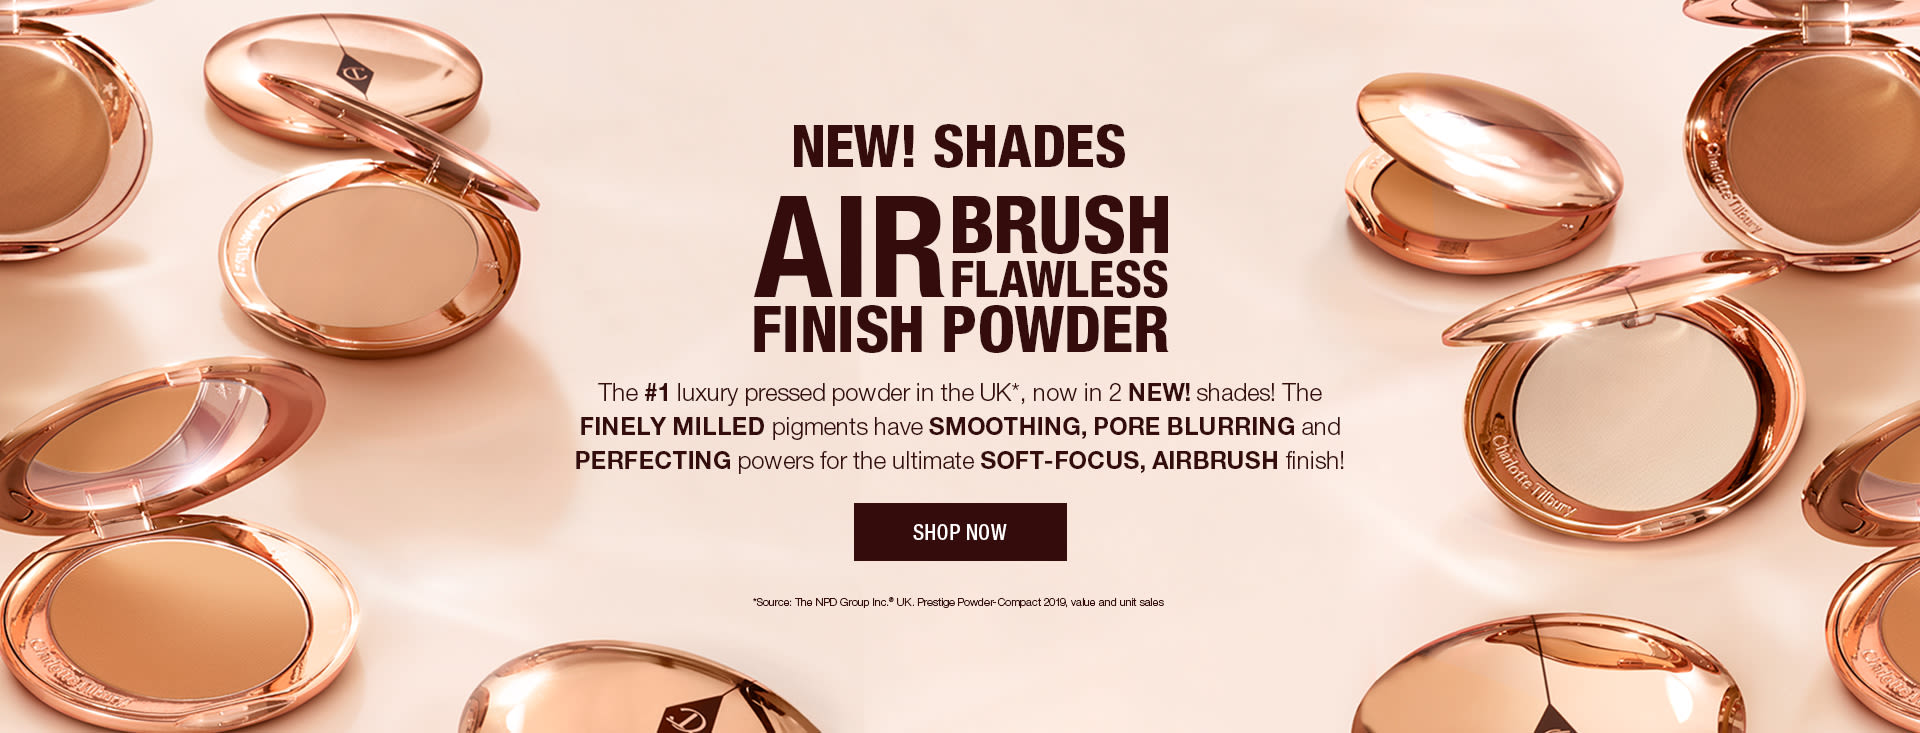 Airbrush Flawless Finish shade extension hero UK